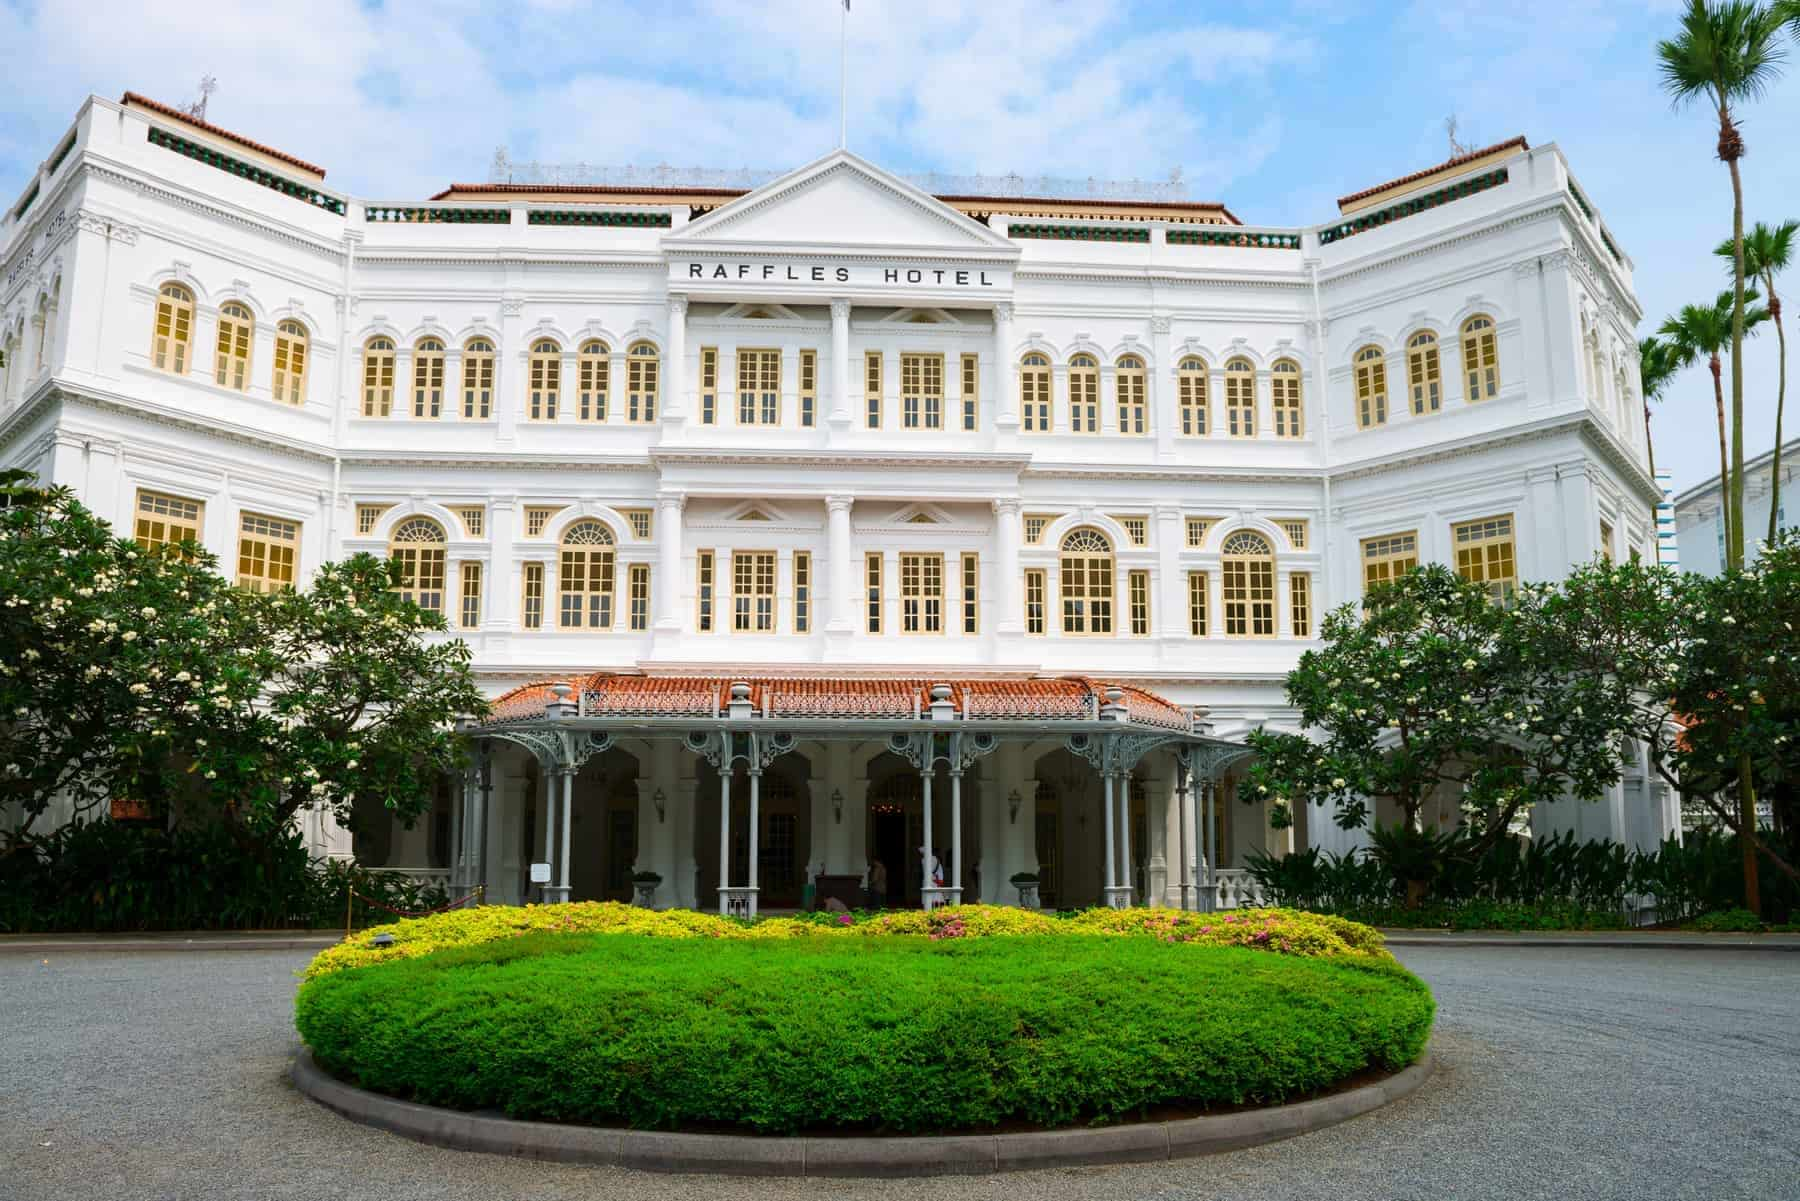 The Raffles Hotel in Singapore, main entrance.